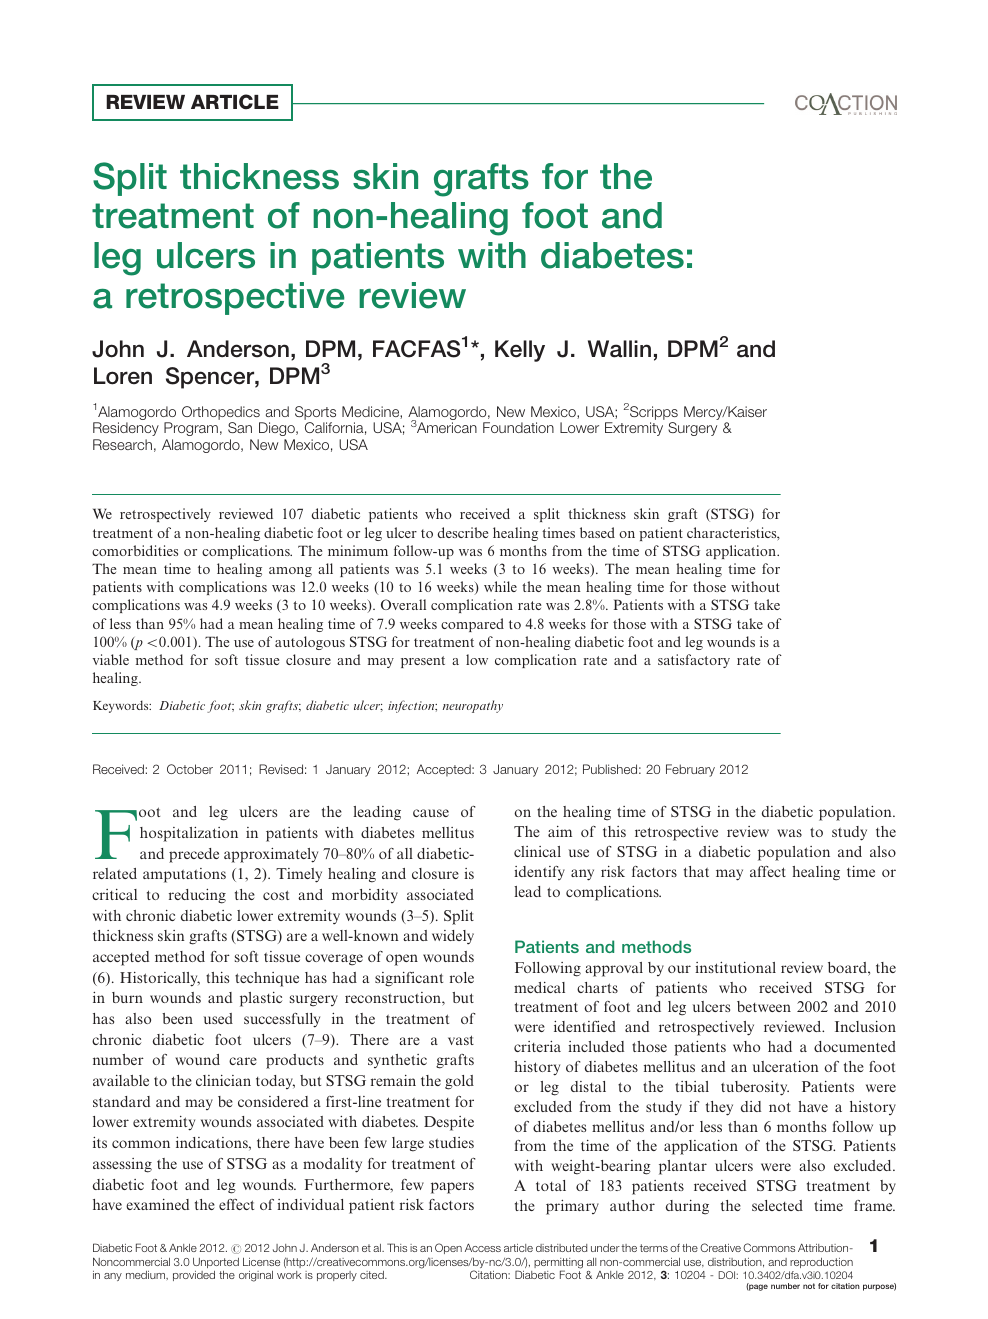 Split thickness skin grafts for the treatment of non-healing foot